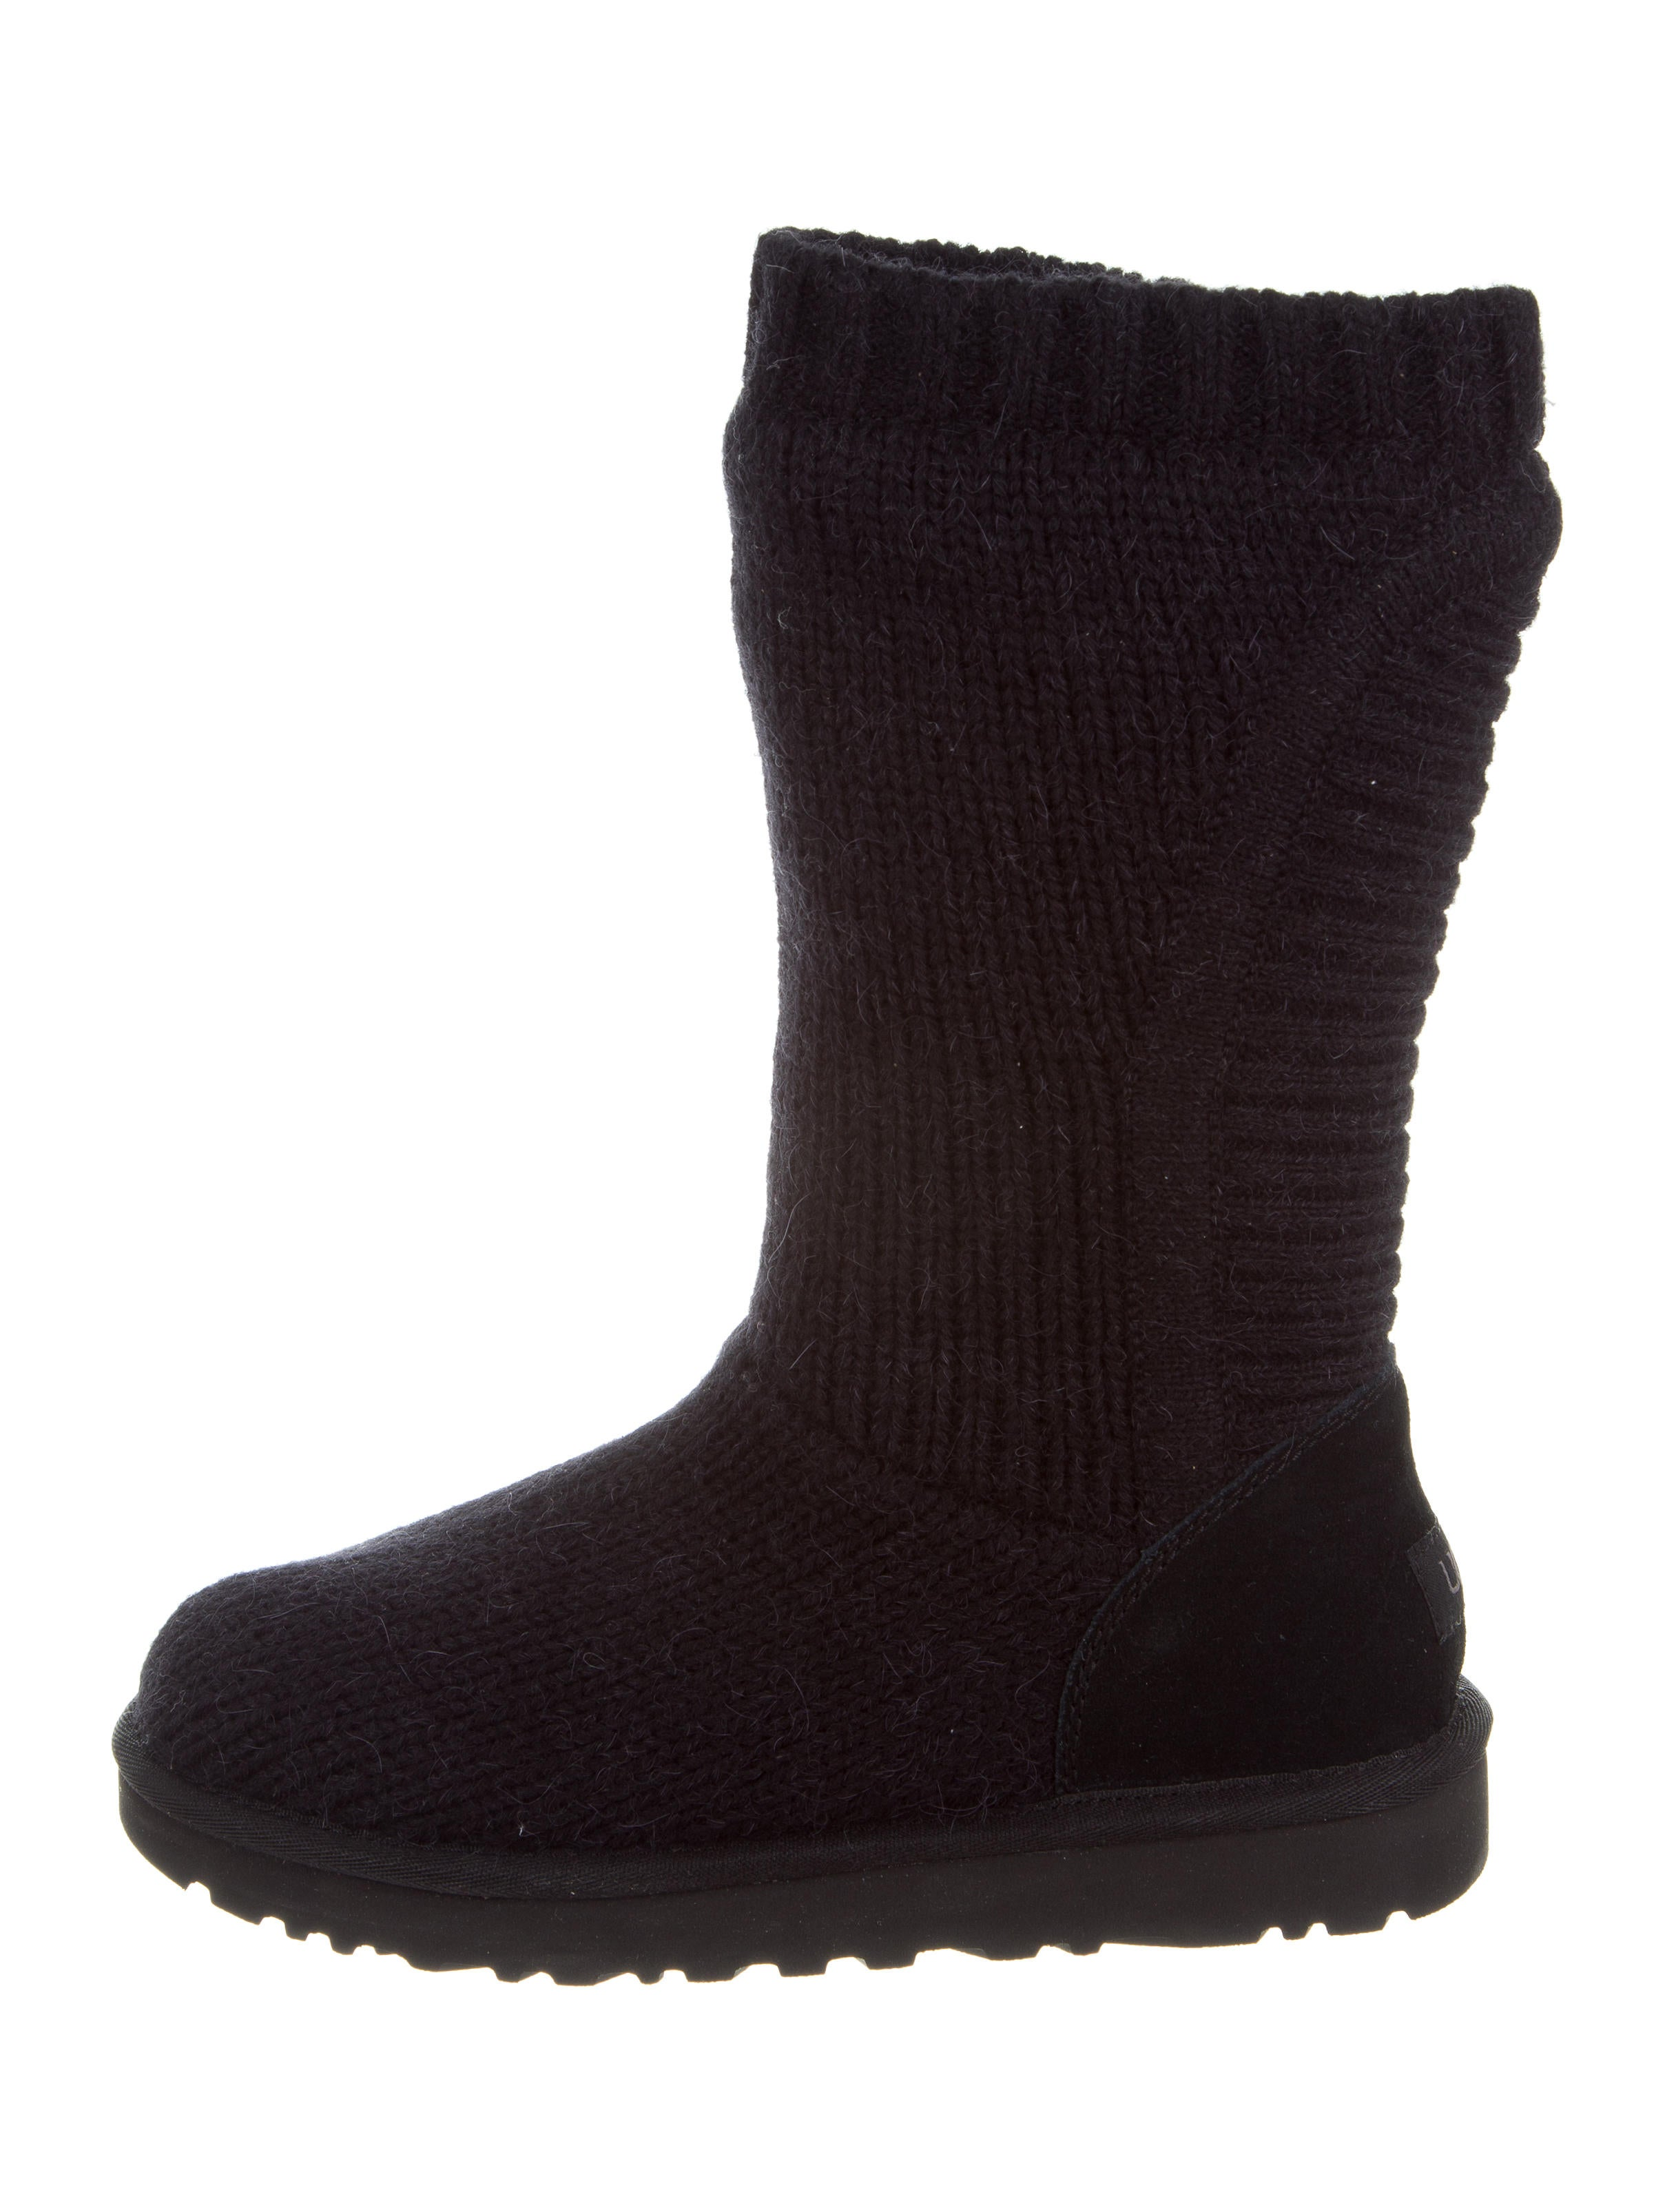 UGG Australia Wool Mid-Calf Boots sale ebay manchester great sale for sale cheap good selling shop for cheap price cheap sale shop RaQzQZcT0z